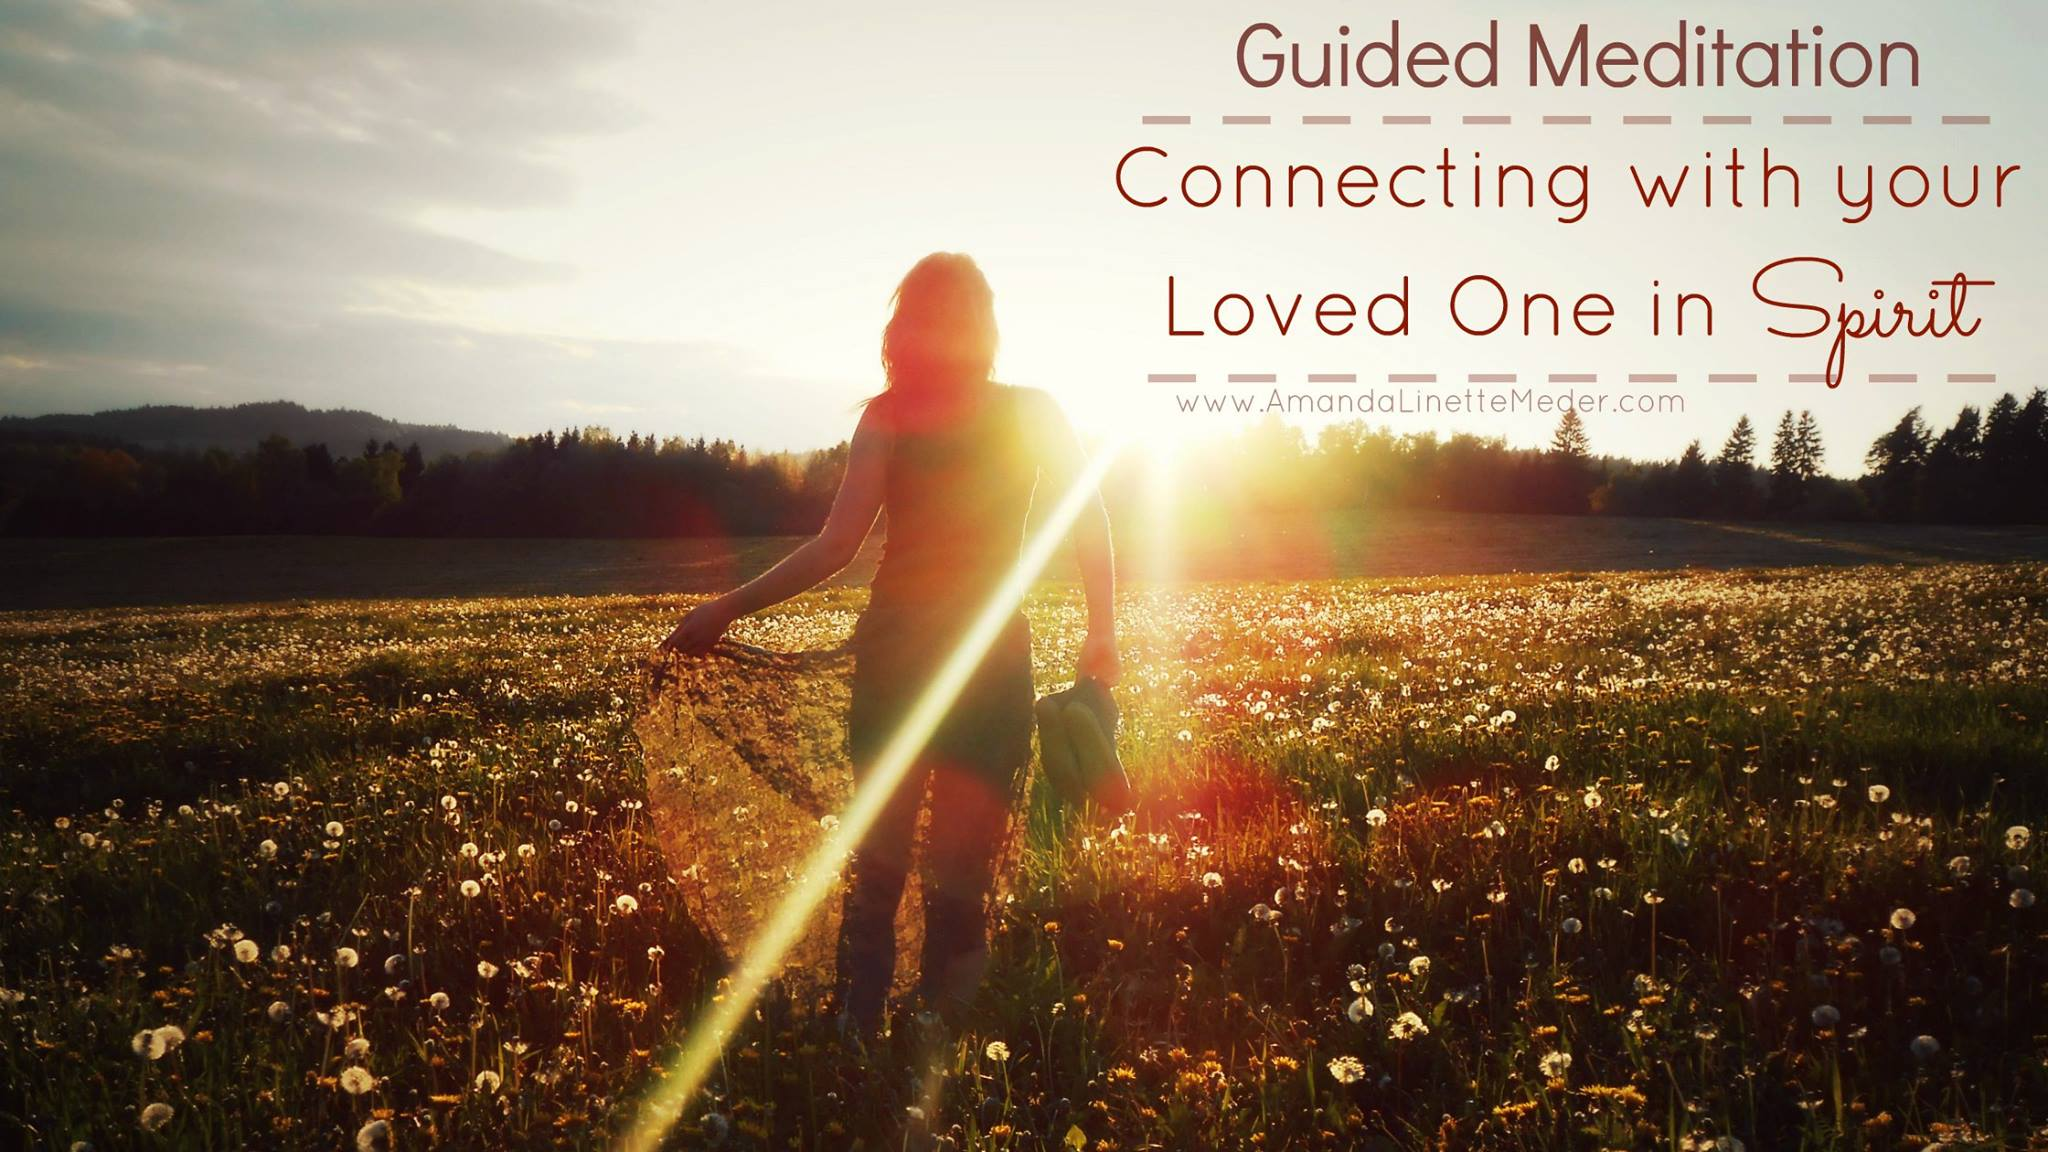 Communicate with a deceased Loved One using this  FREE guided mediation  with voice-over by Amanda Linette Meder and music by Thaddeus >>